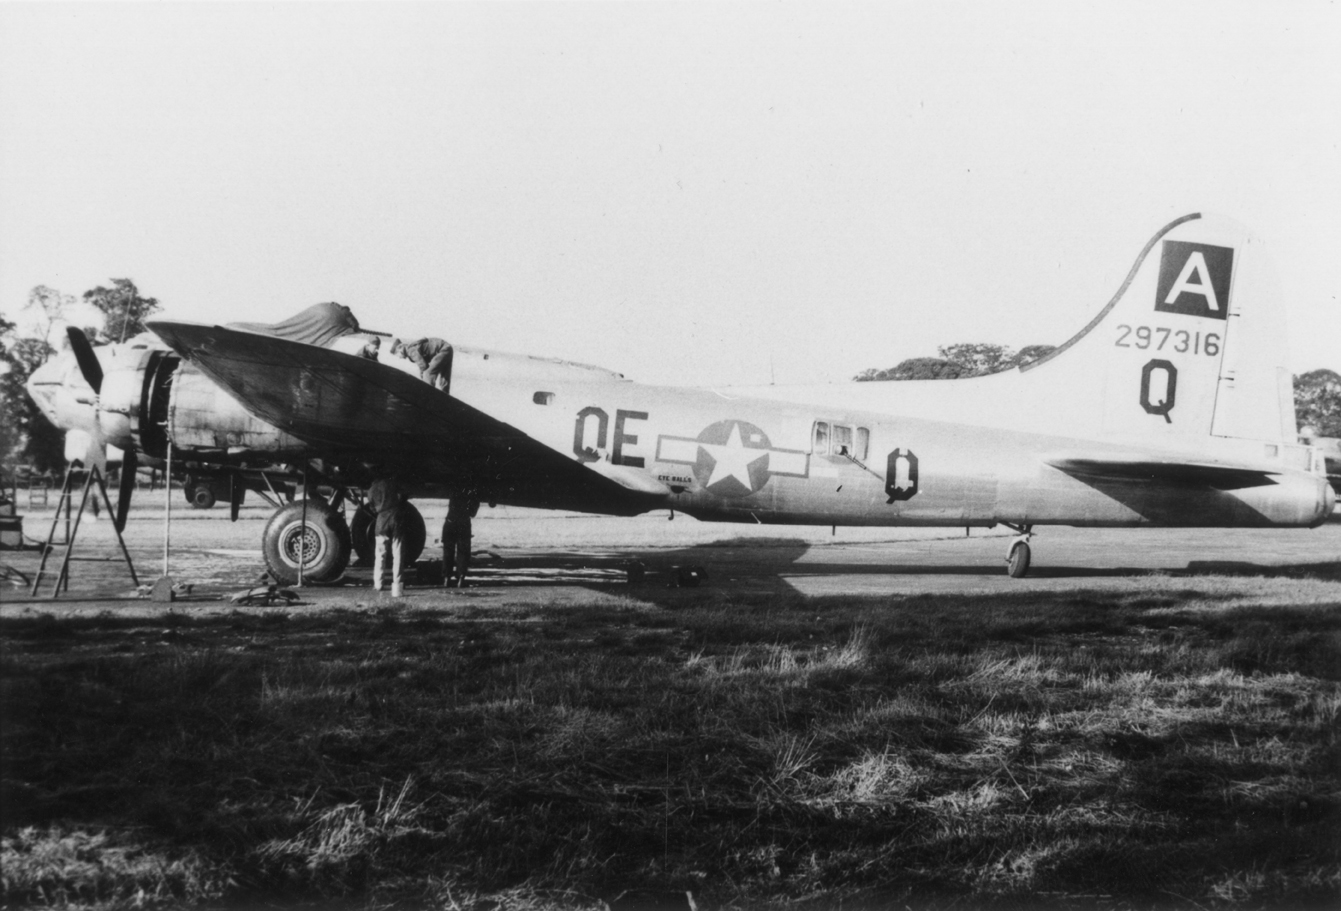 B-17 #42-97316 / Tommy